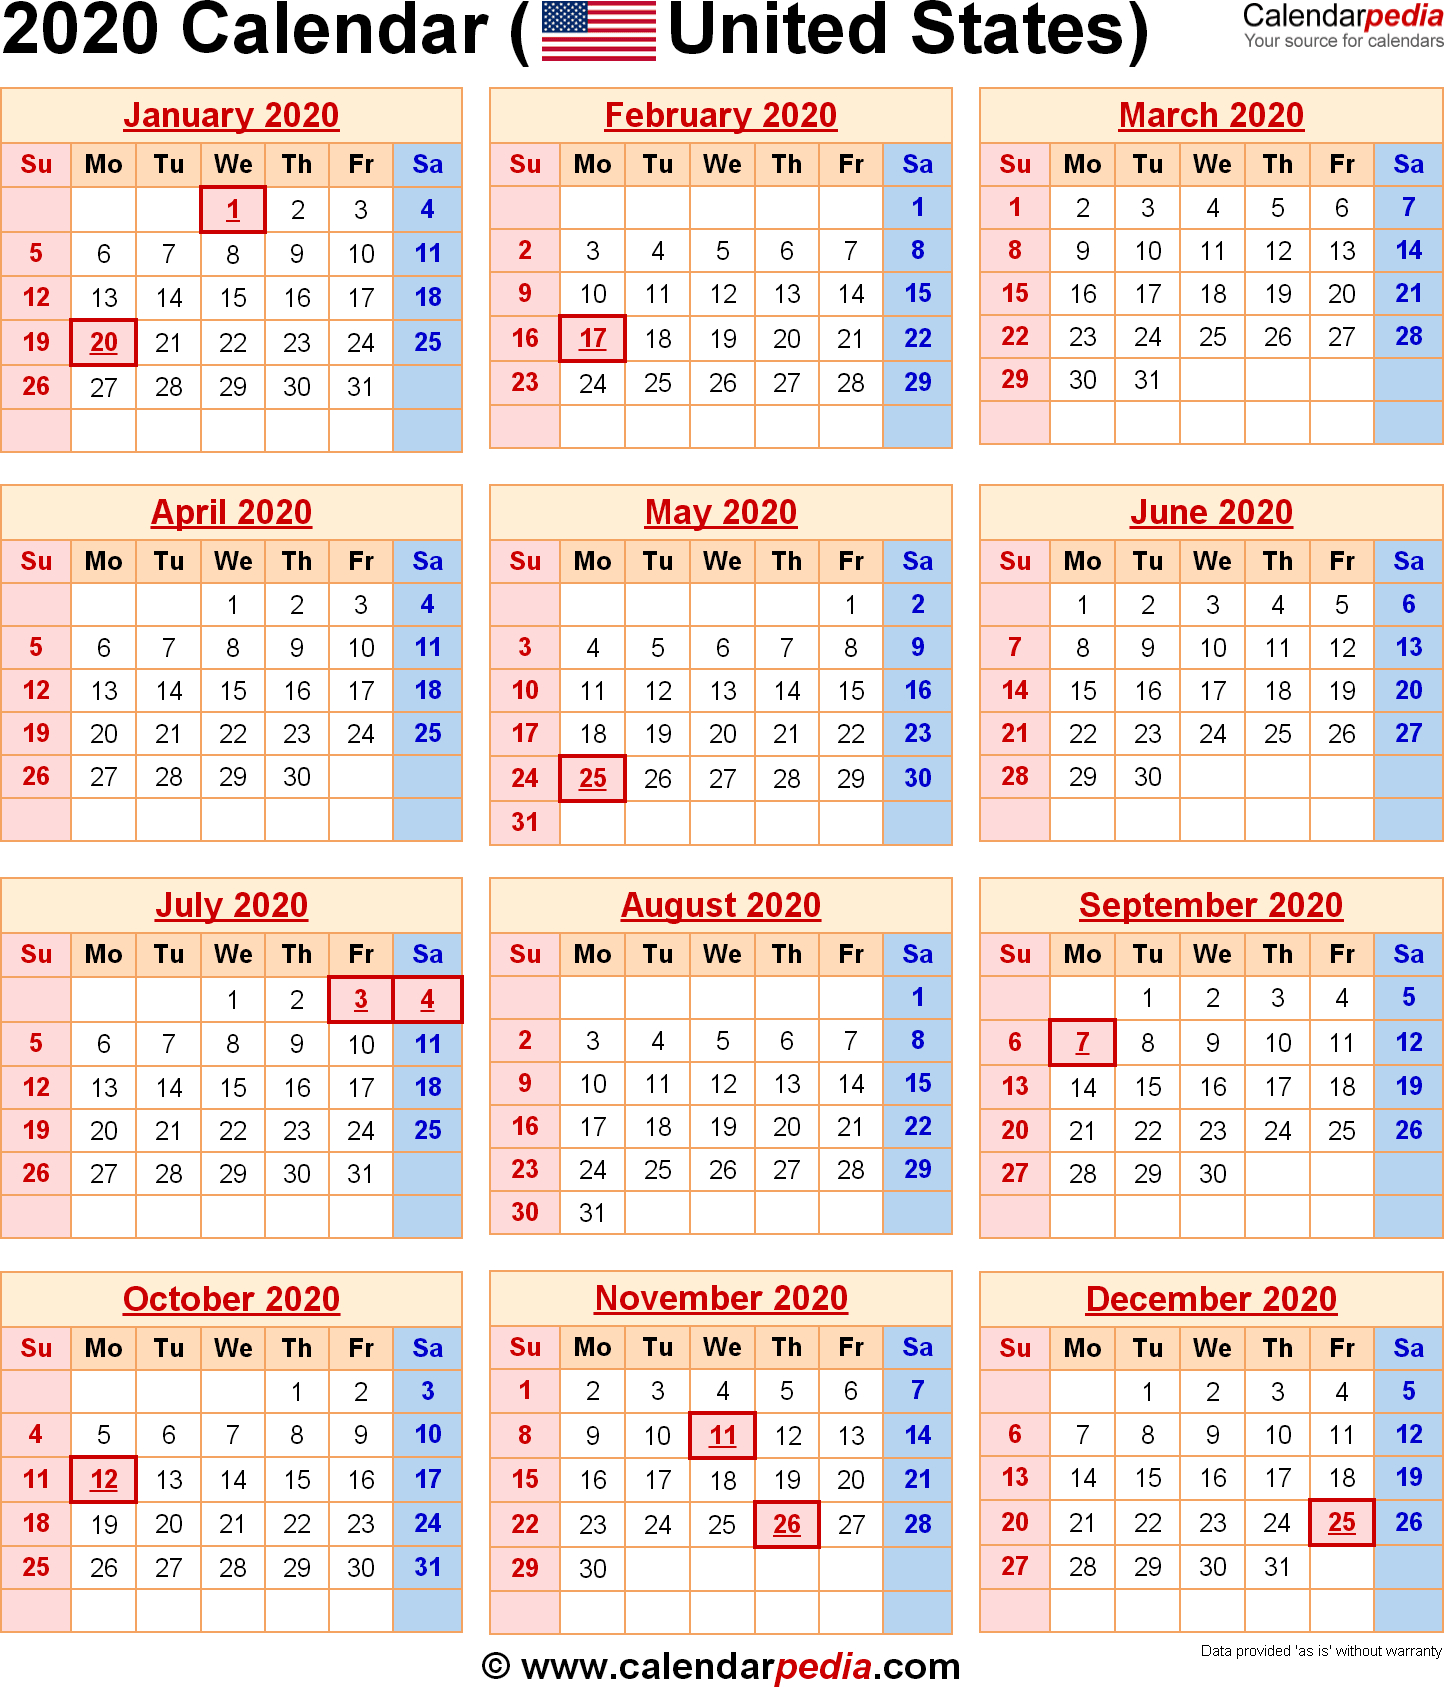 Usa Calendar 2020 - Wpa.wpart.co intended for Calendar At A Glance With Usa Holidays For 2020